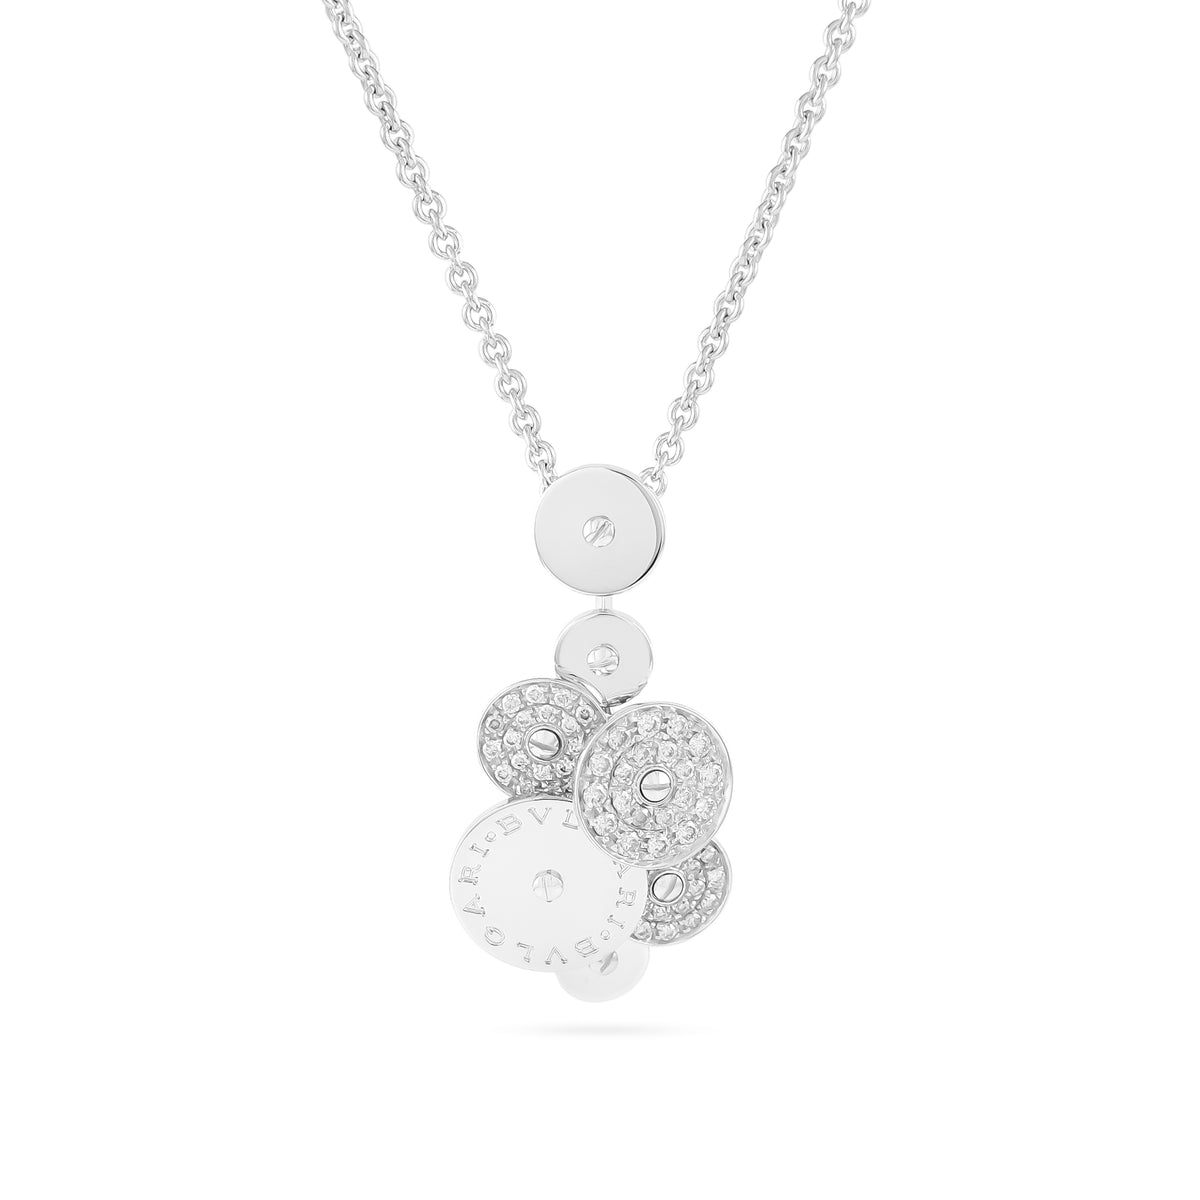 Bvlgari 18ct White Gold Diamond Cicladi Pendant